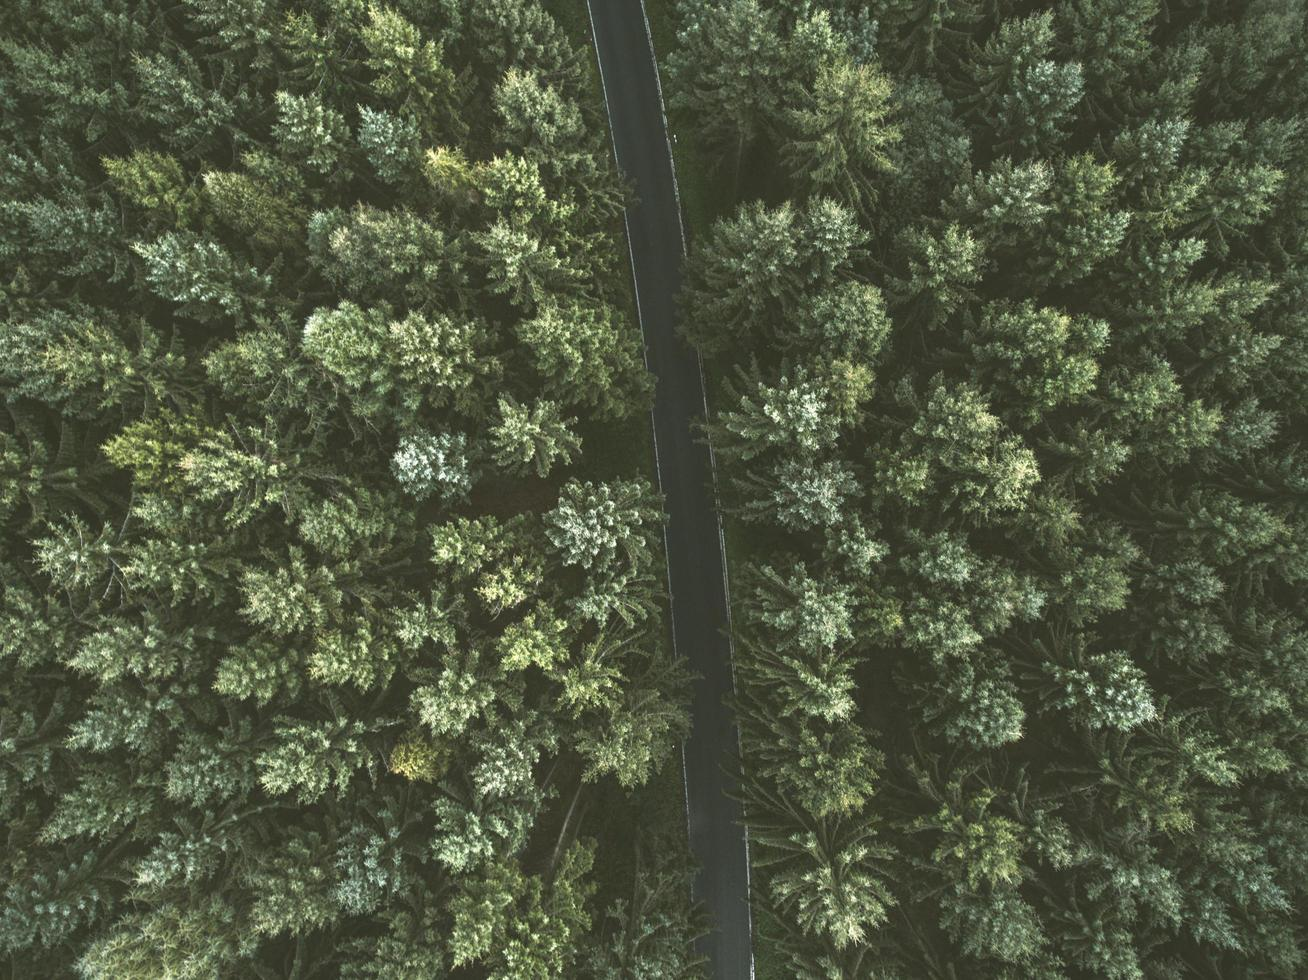 Aerial view of a road between trees photo